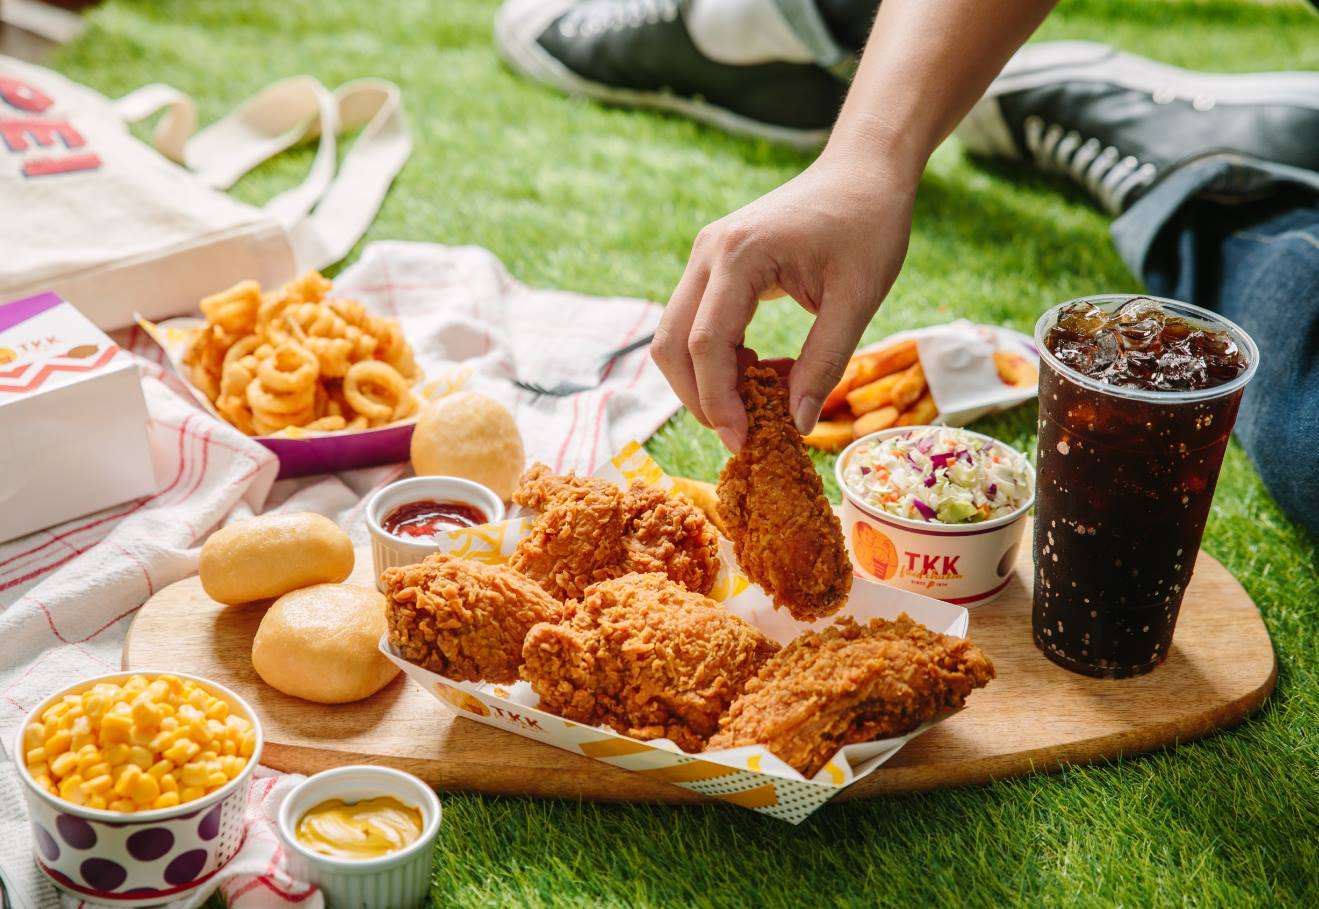 Fried chicken, corn, cole slaw, soda, and curly fries on a picnic board